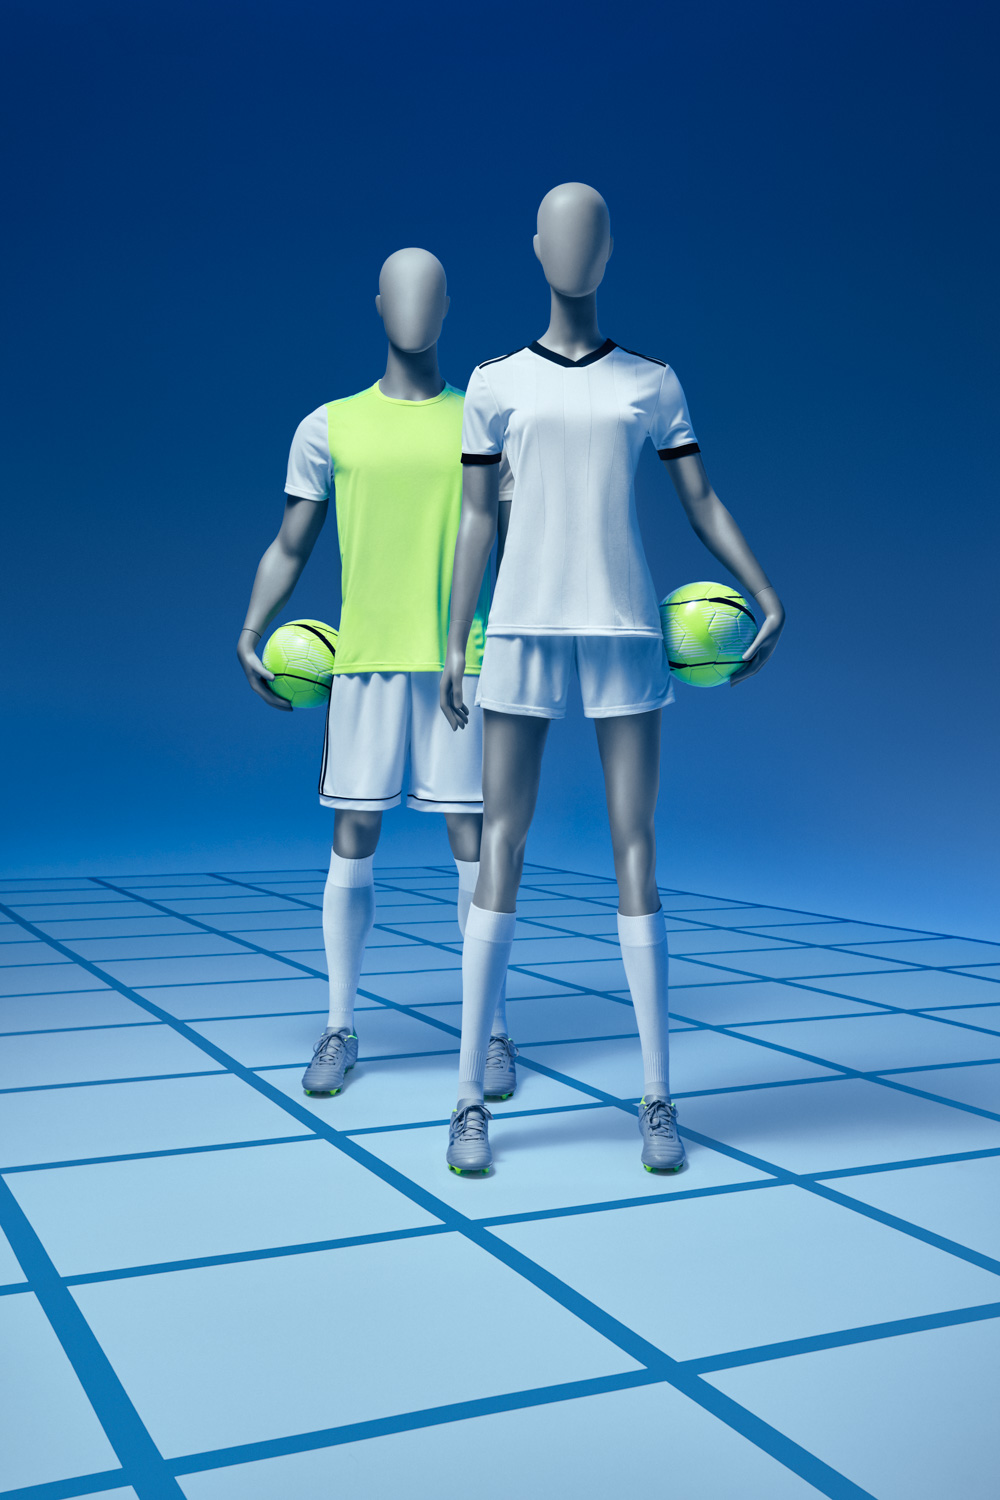 Football mannequins, female and male